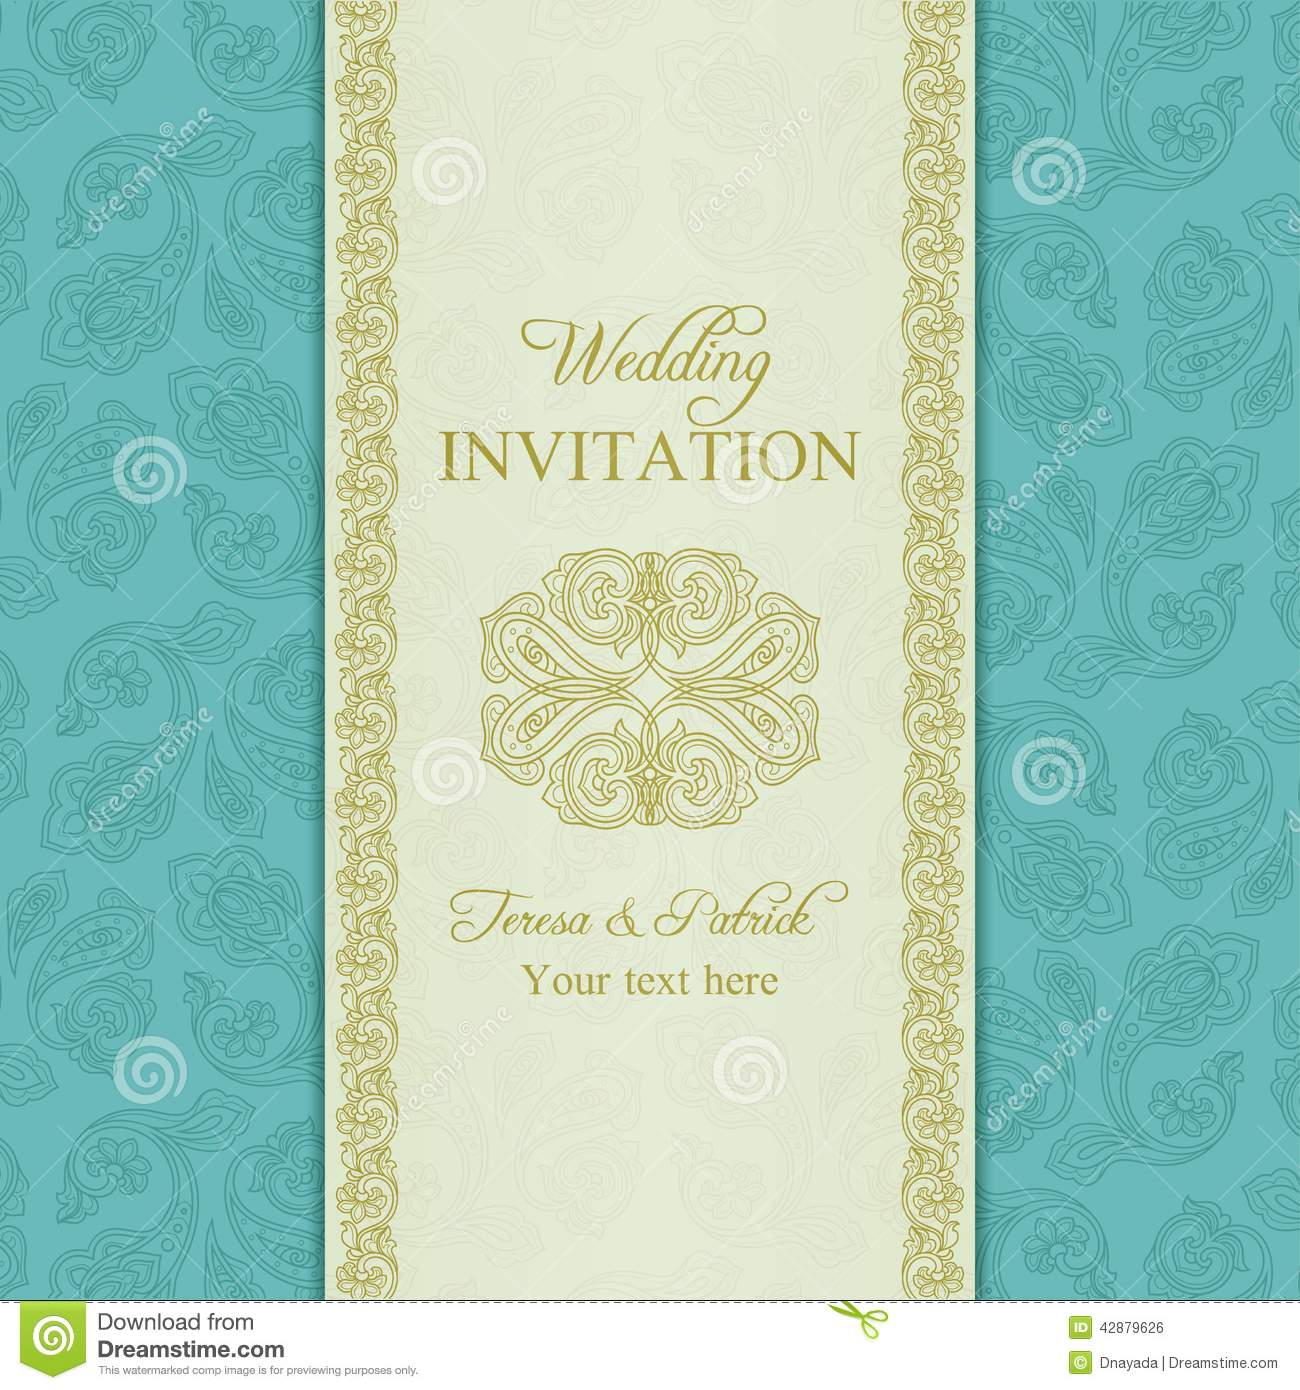 Turquoise Wedding Invitation for great invitations template